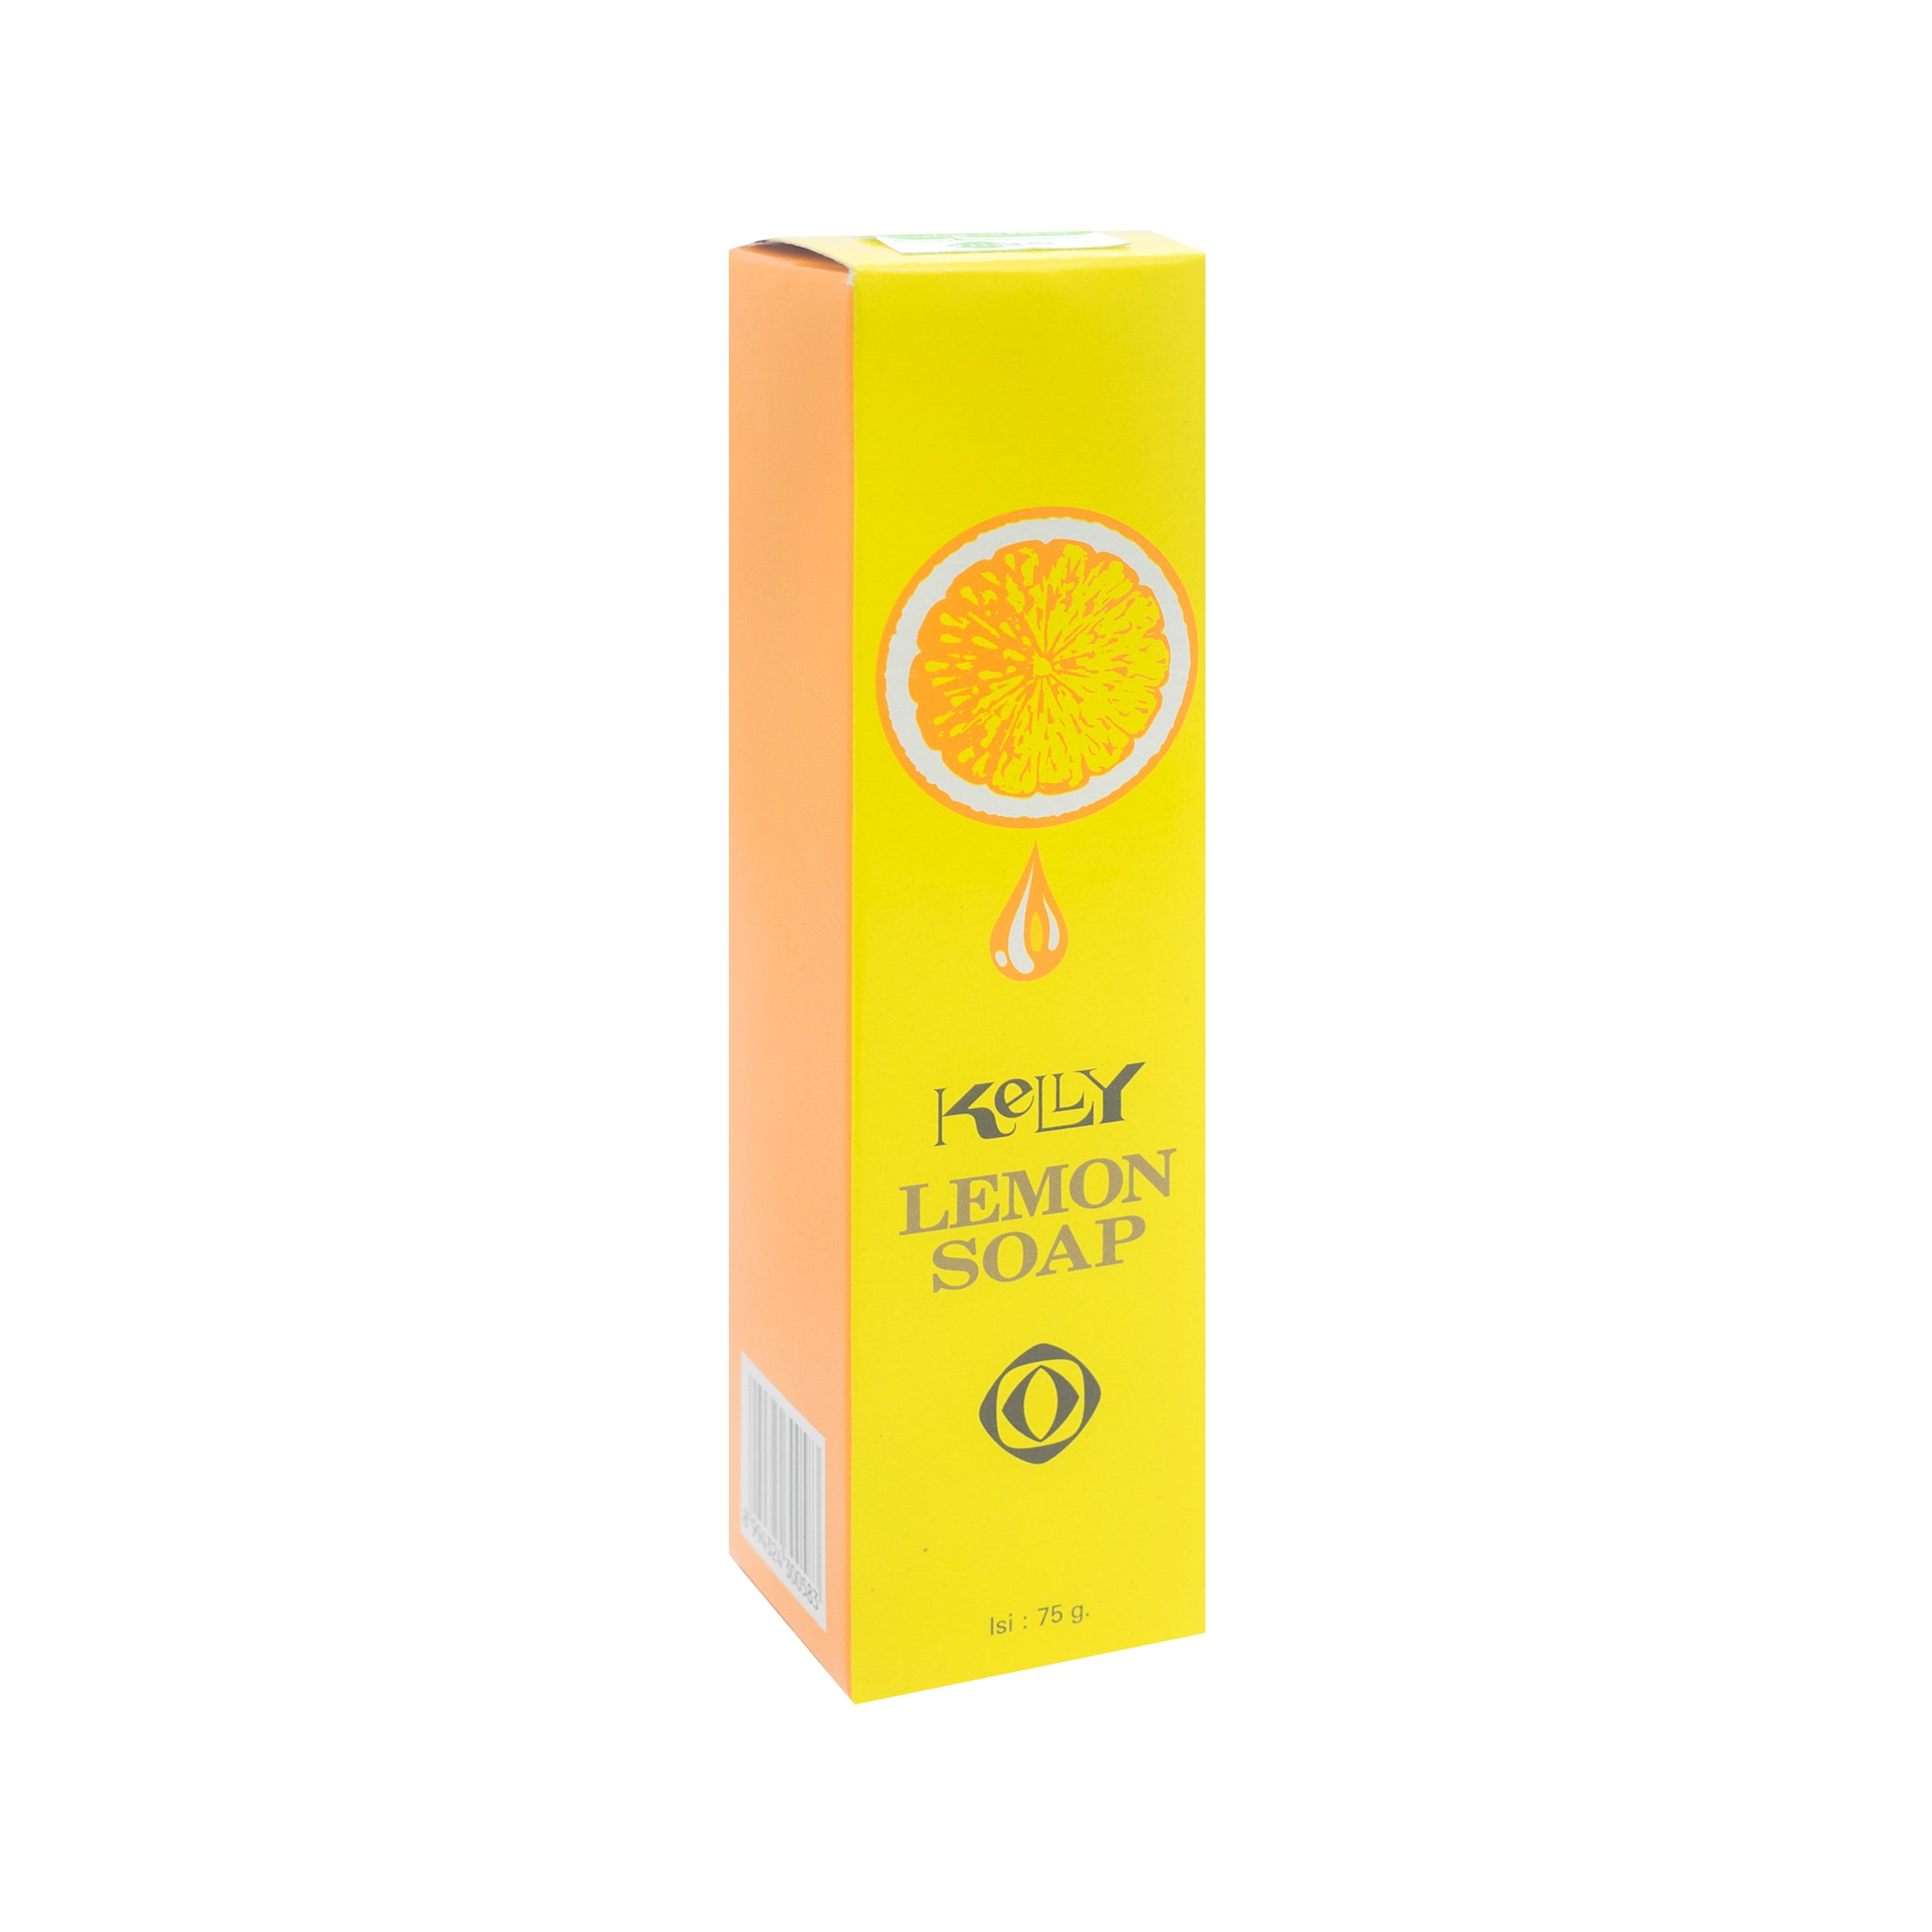 Kelly Lemon Soap, 75 g